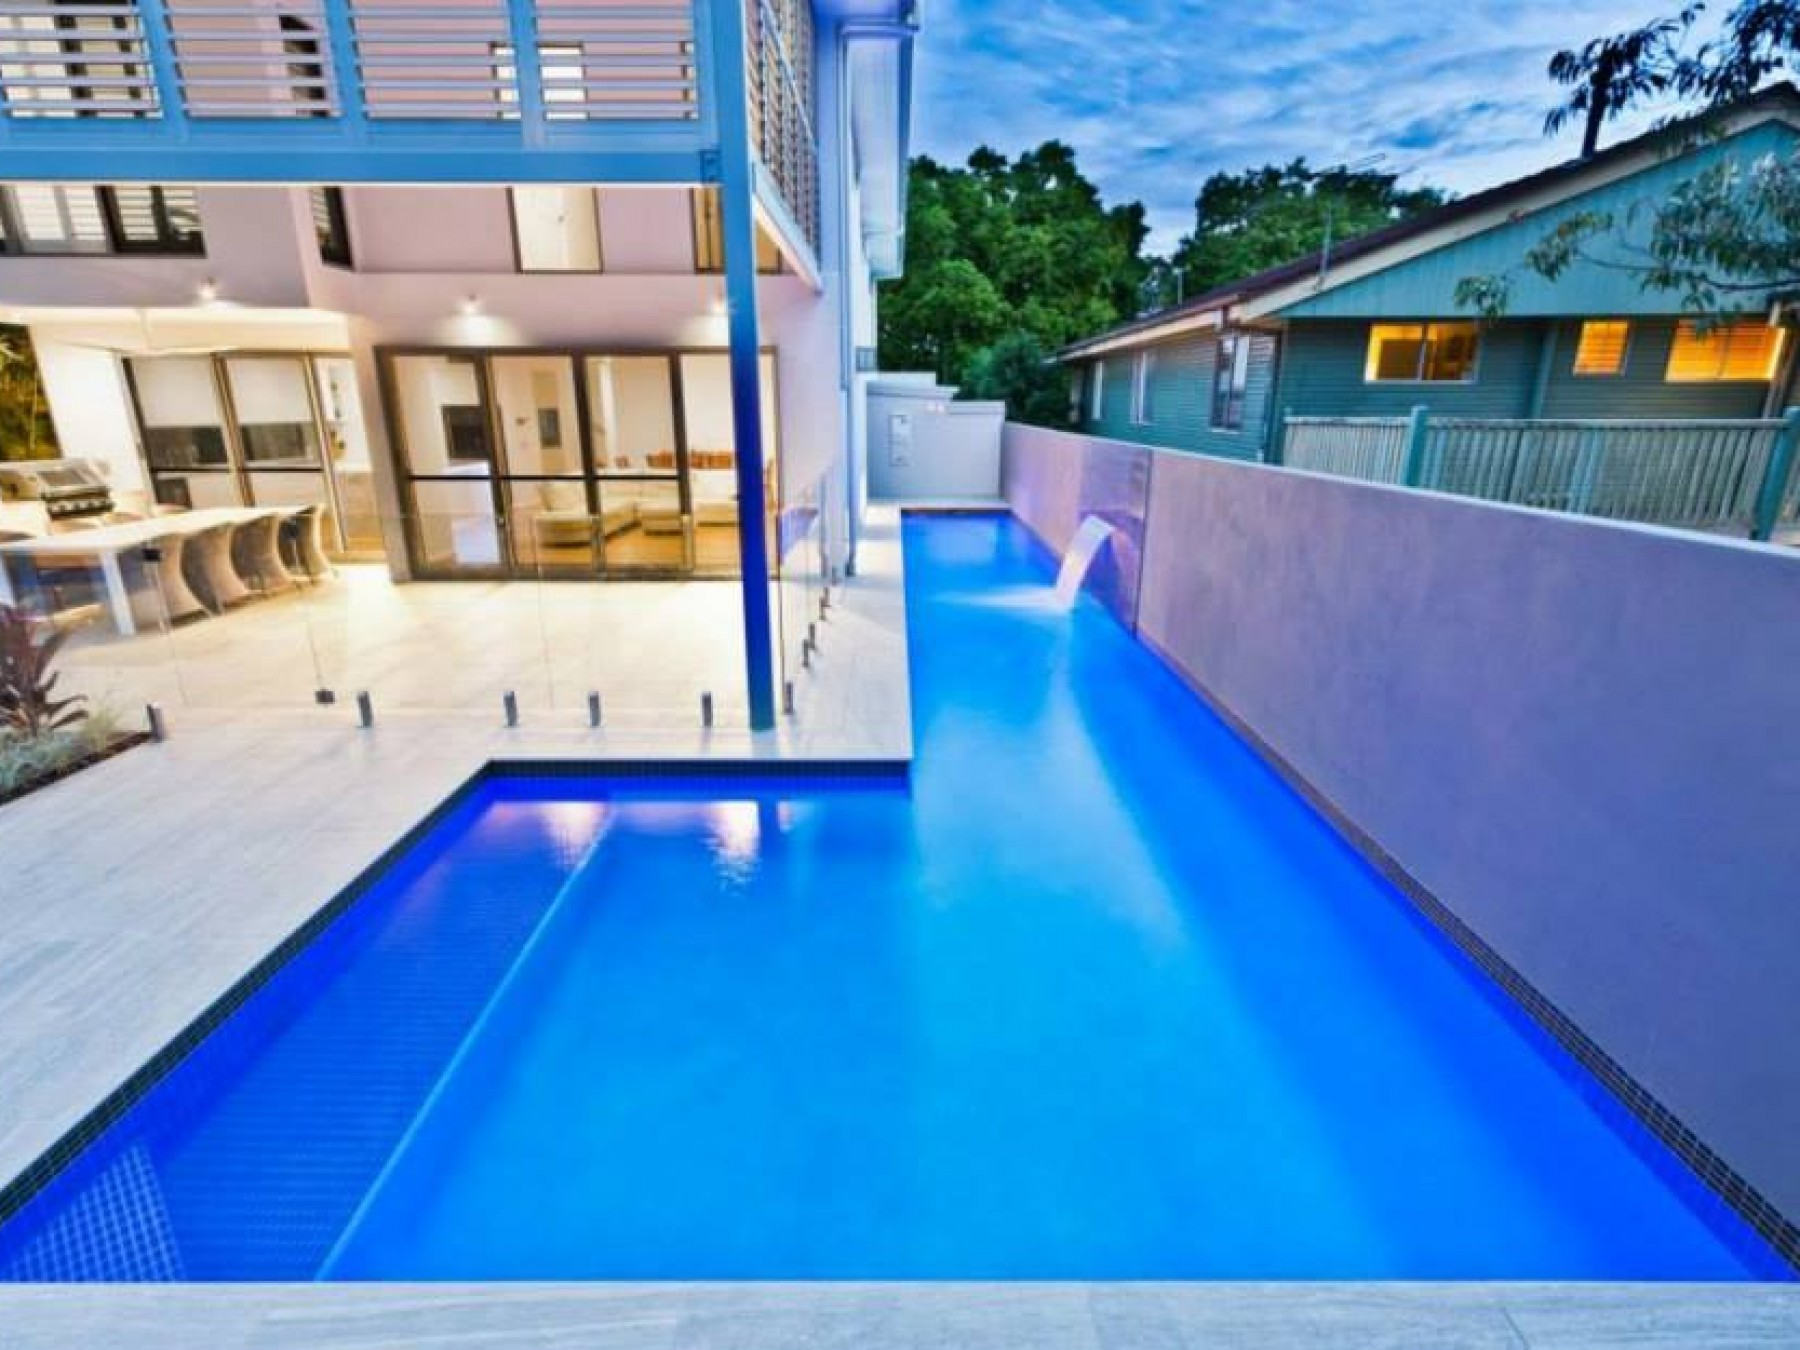 Selling or Leasing a pool in Ormiston